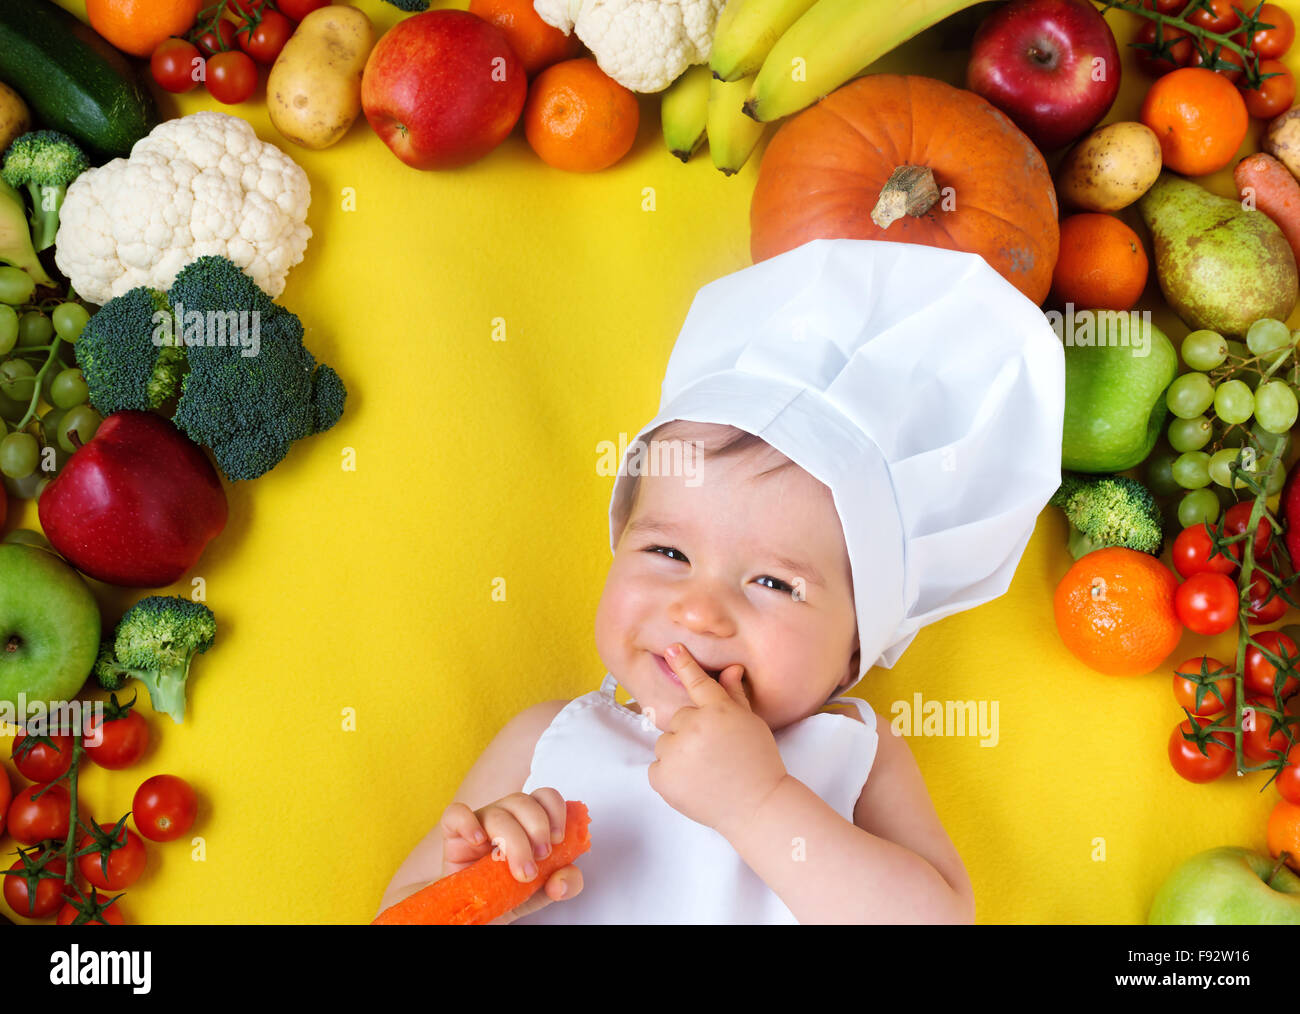 Baby surrounded by fruits and vegetables - Stock Image